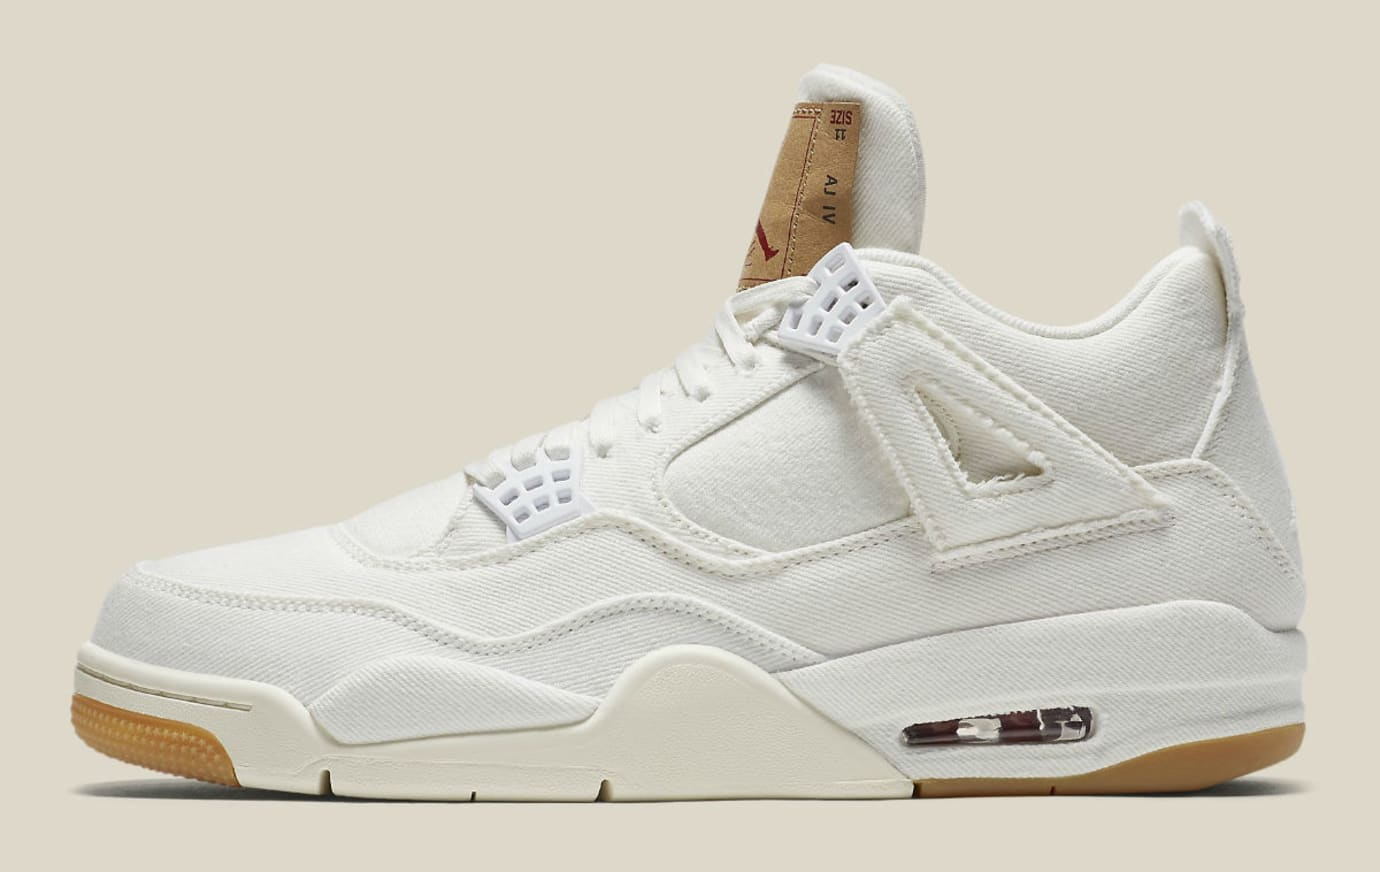 98782aabe77 White Levi's x Air Jordan 4 Release Date AO2571-1001 | Sole Collector